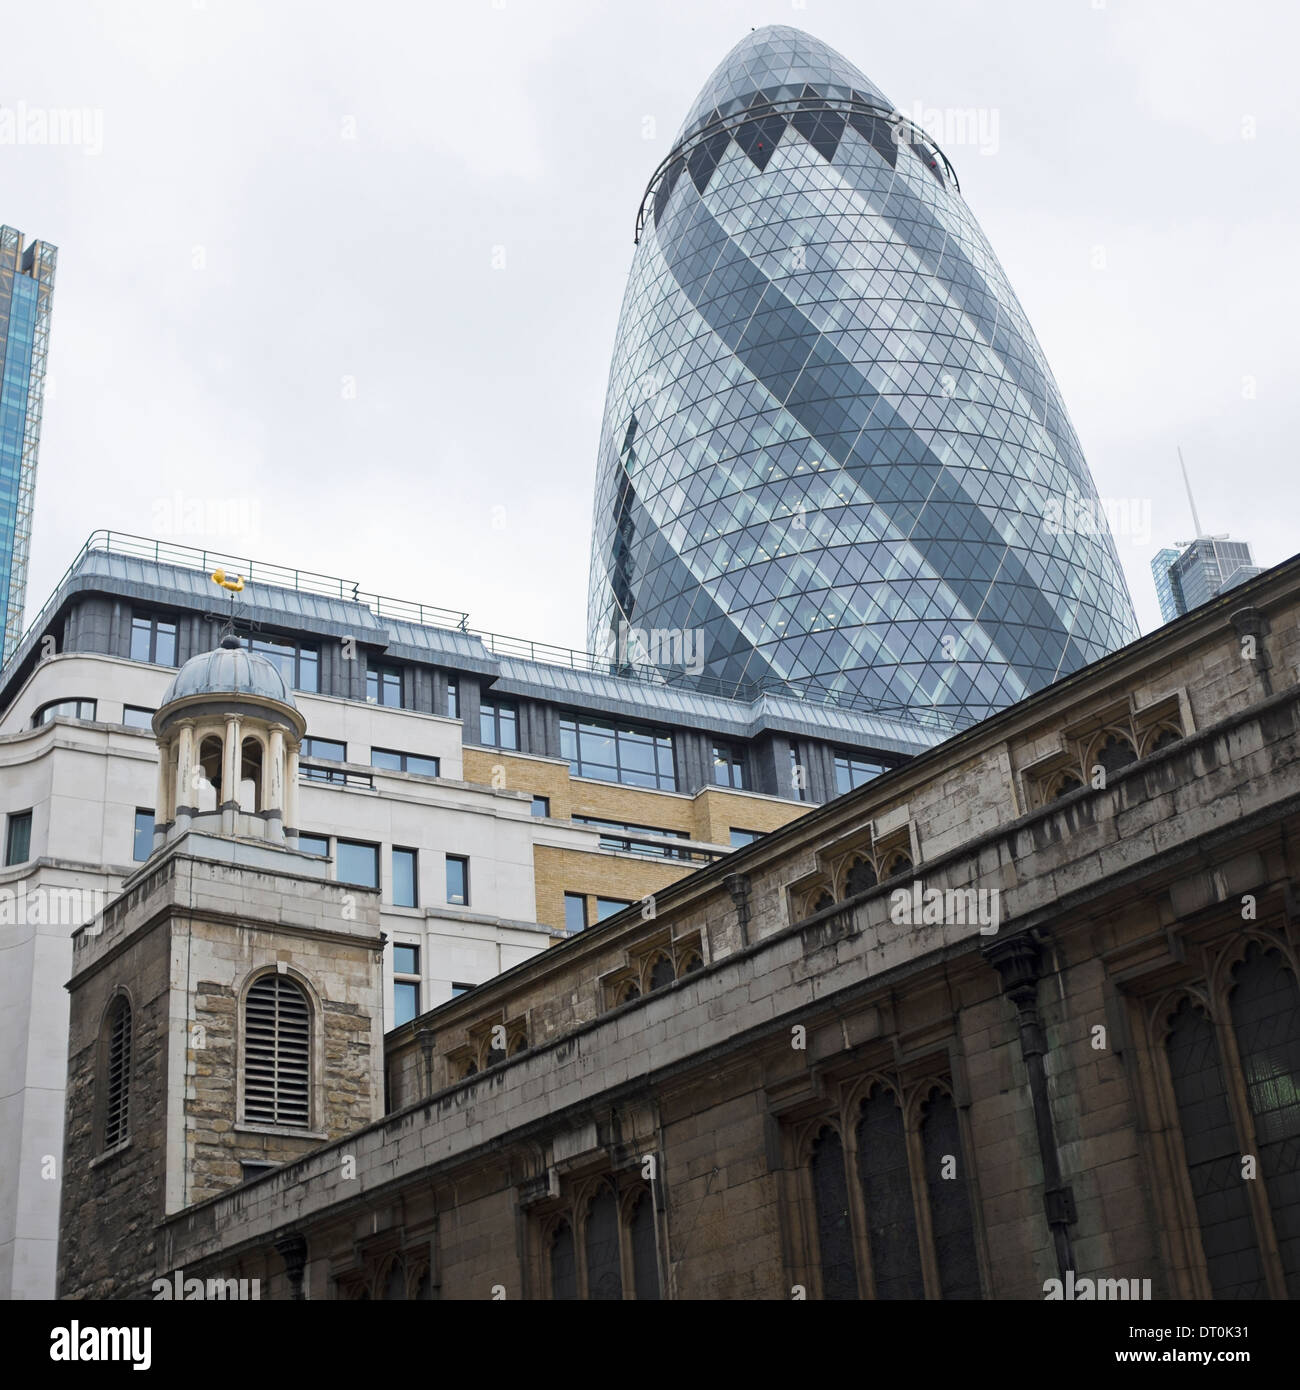 St Katharine Cree church in the foreground with the Swiss RE The Gherkin towering in the background. - Stock Image